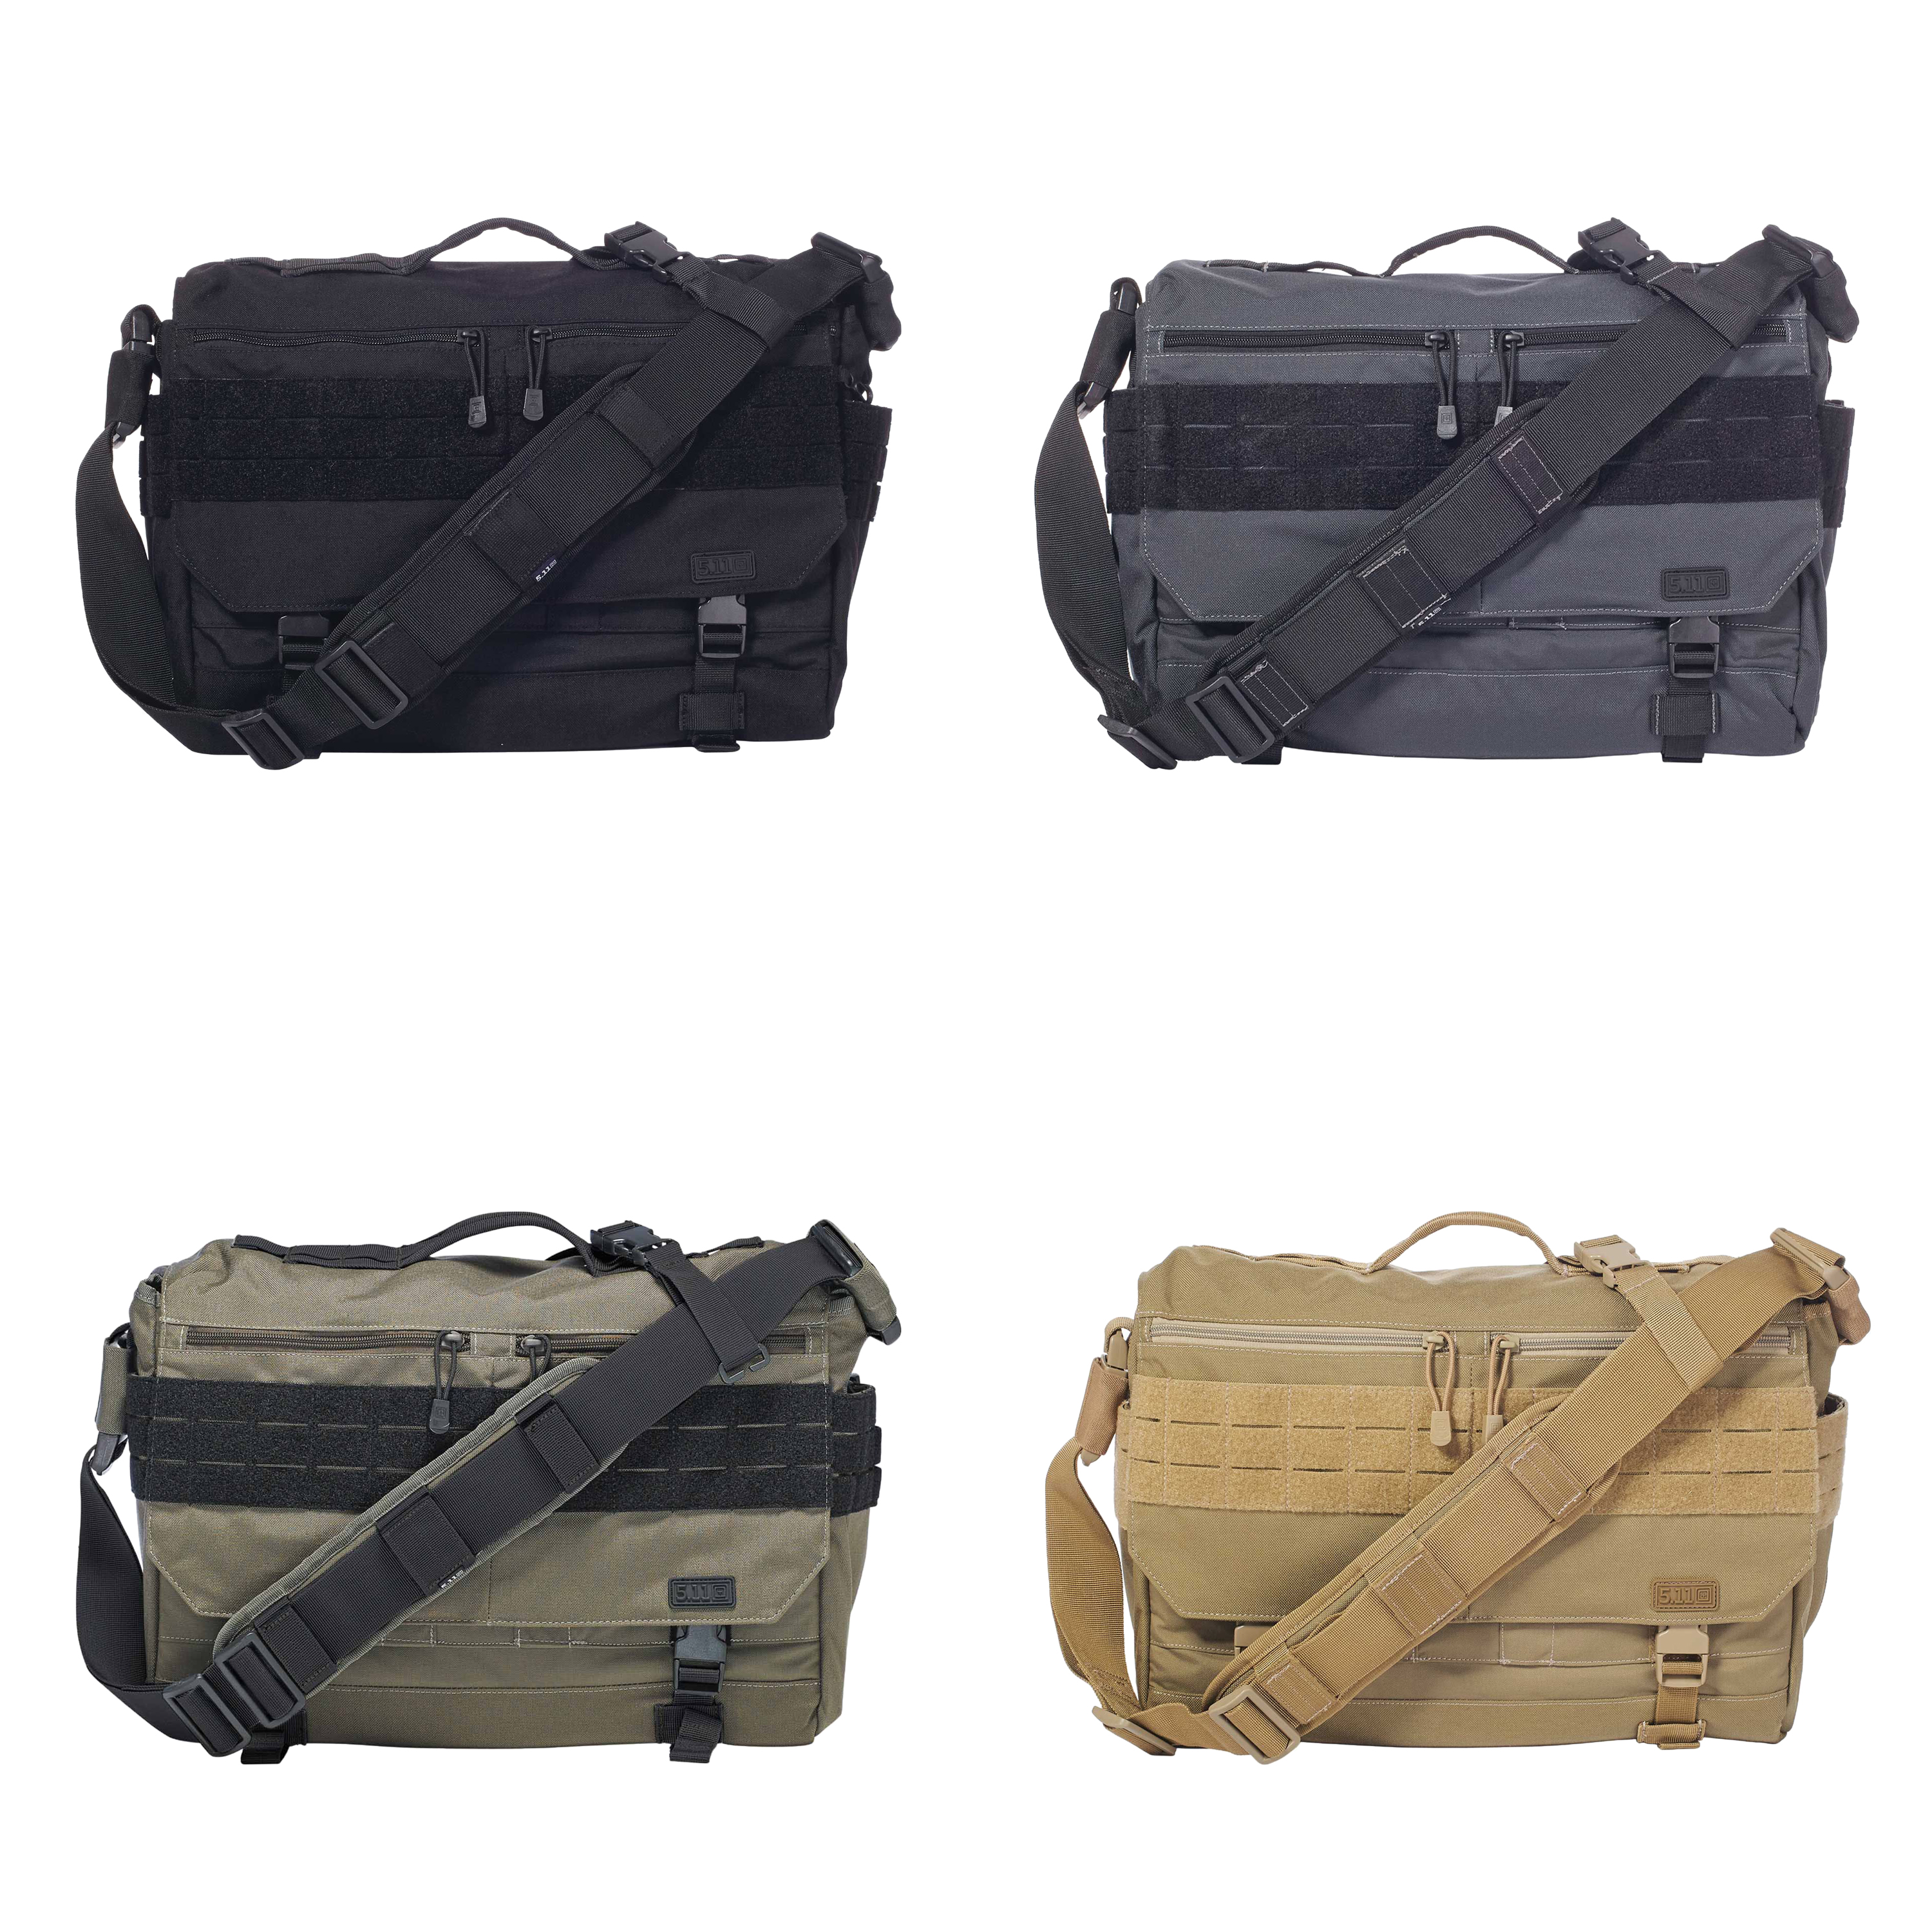 5 11 Rush Delivery Lima Tactical Messenger Bag Medium Style 56177 4 Colors